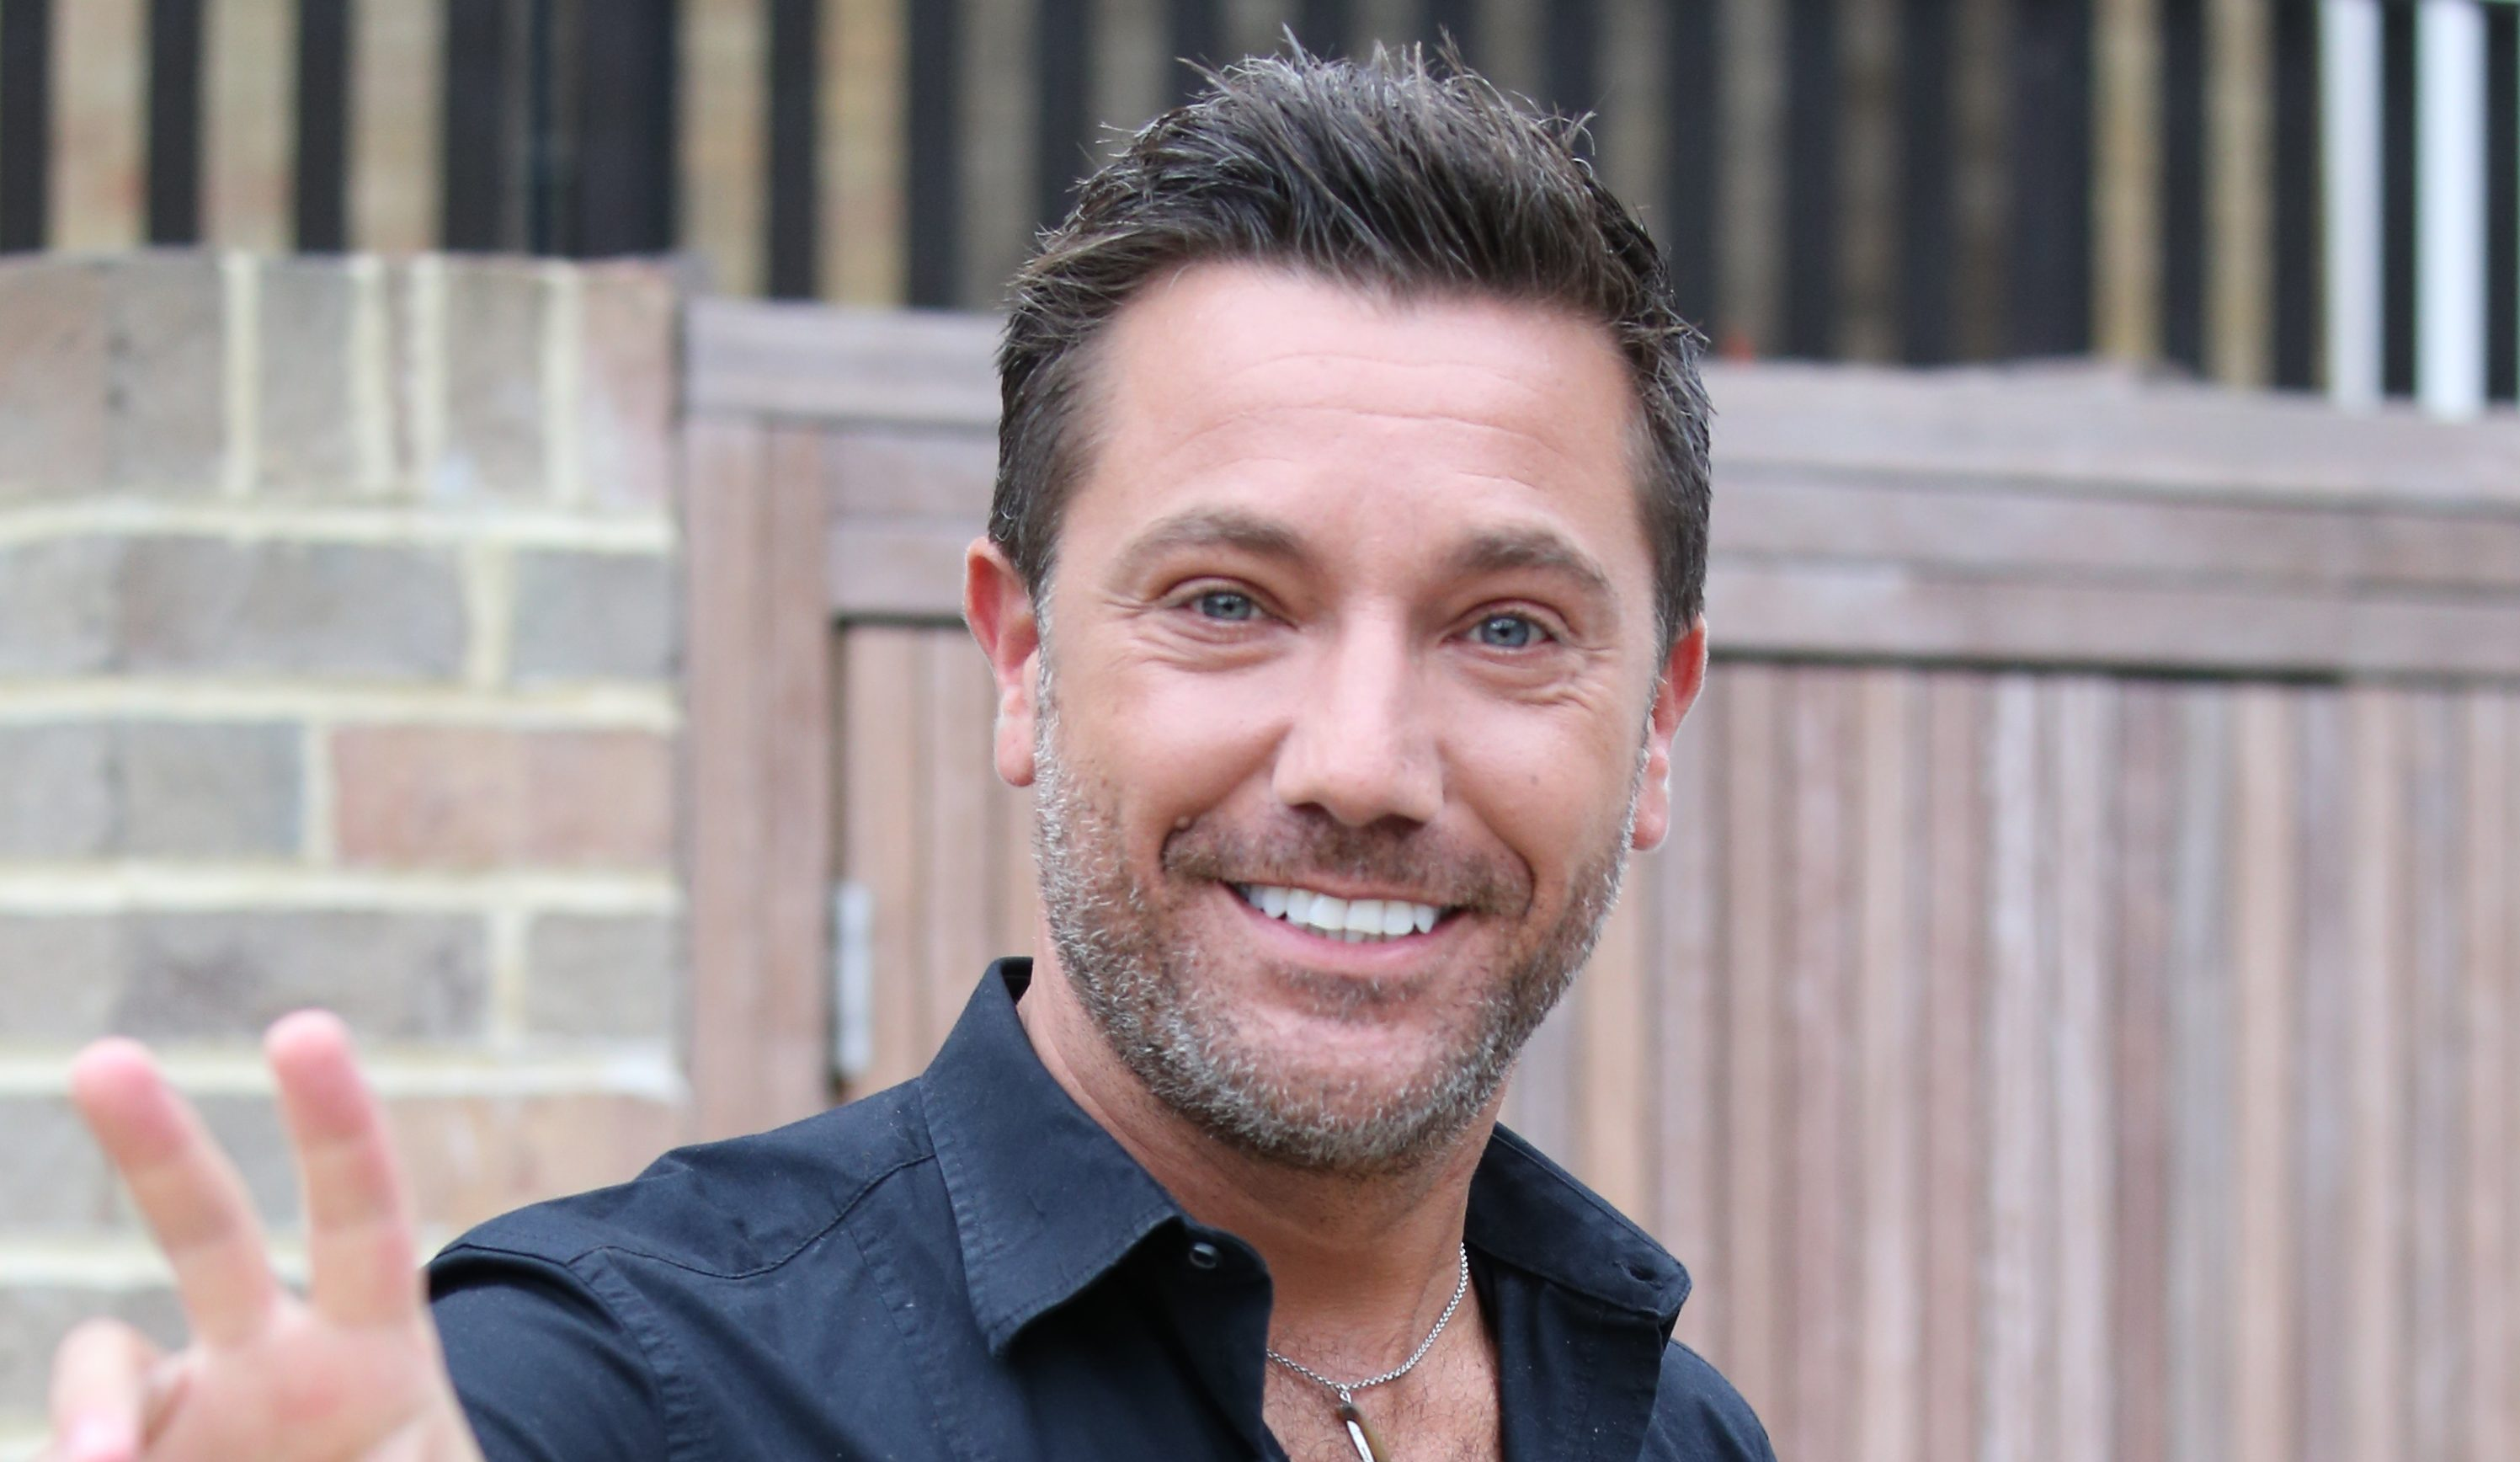 Gino D'Acampo reveals he turned down Strictly offer